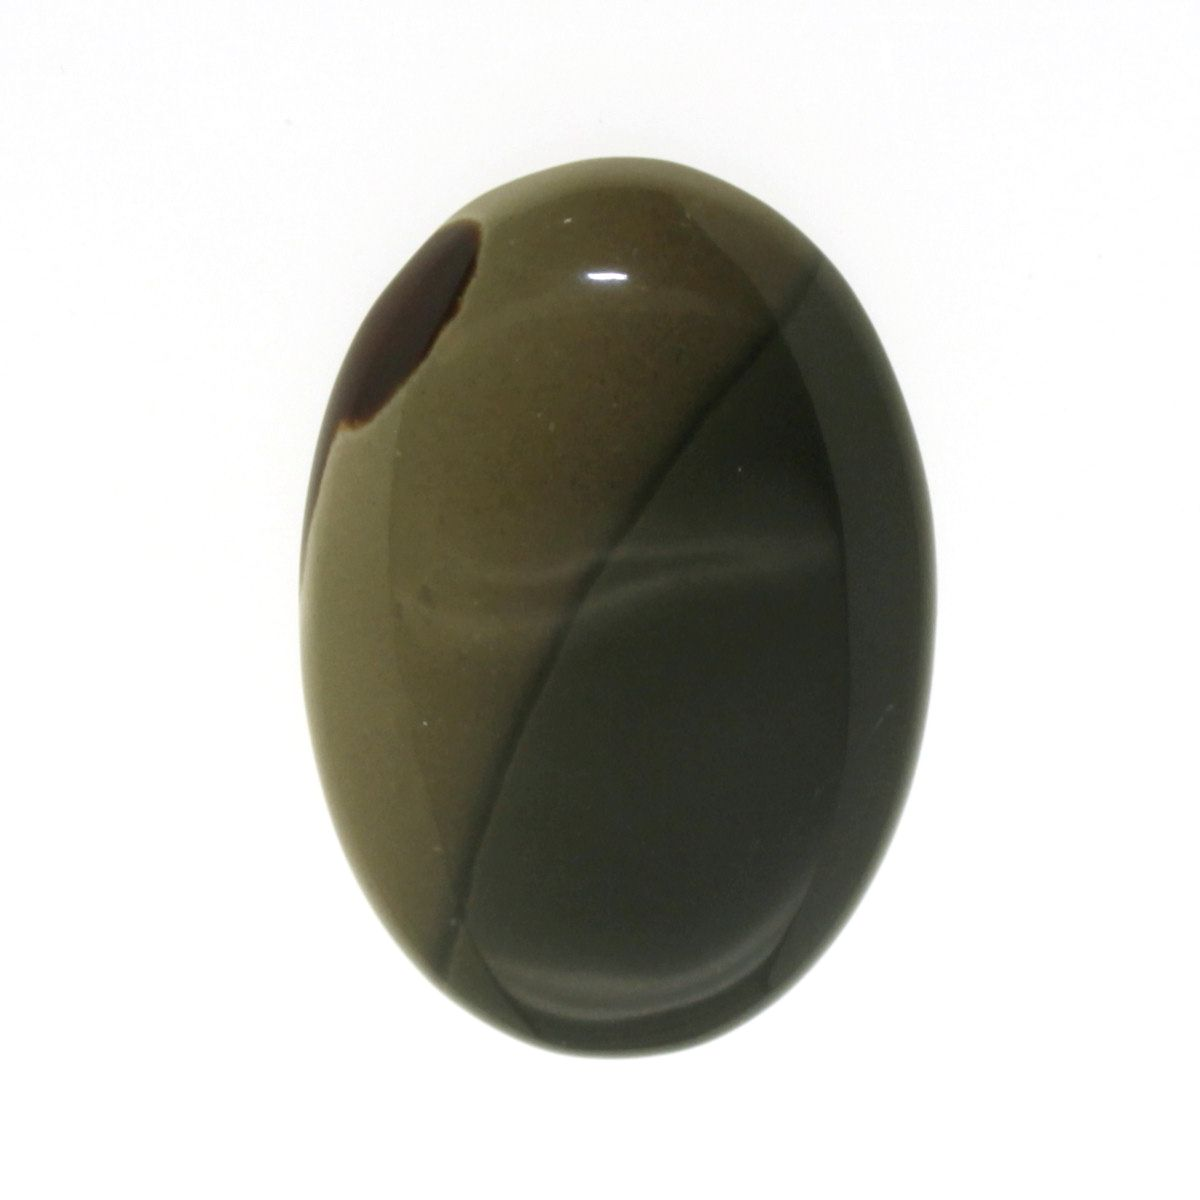 Cabochon Jasp (Jasper Fancy) bej oval 44 x 0.6 mm